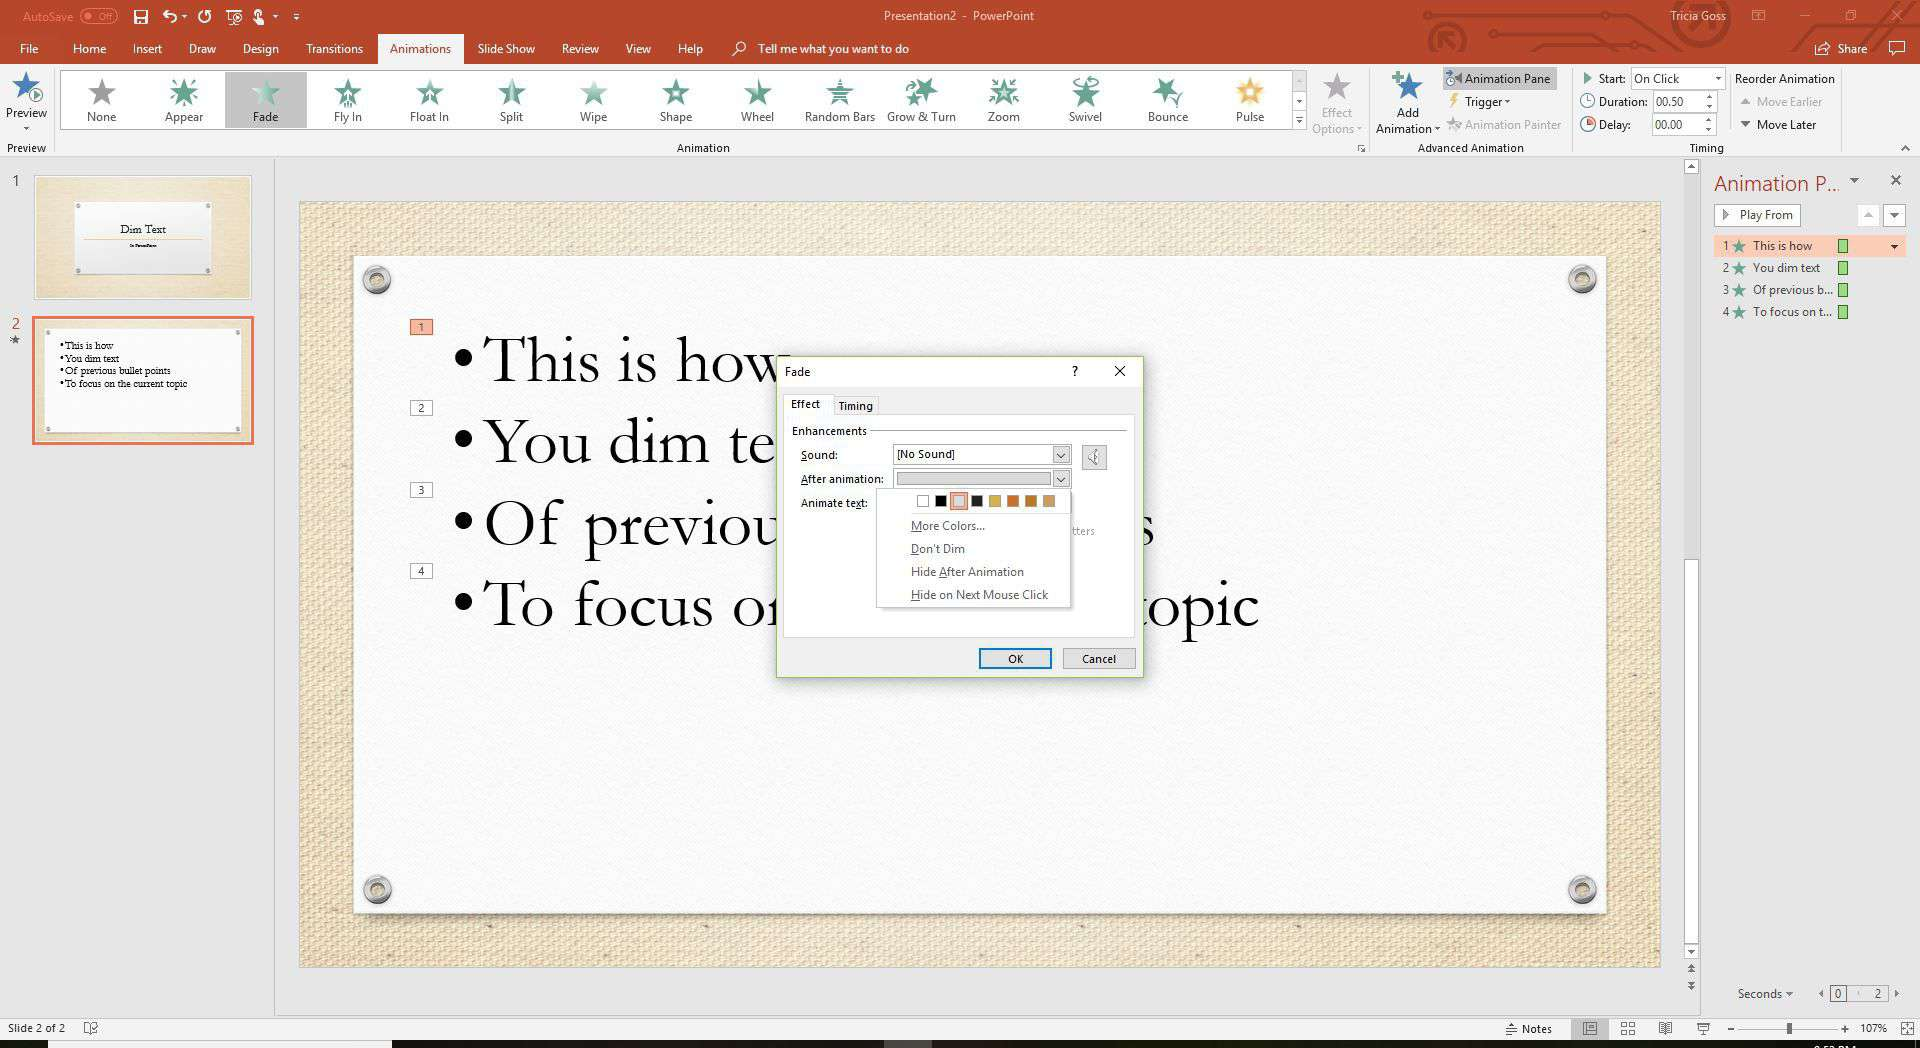 A screenshot of PowerPoint showing how to dim text.